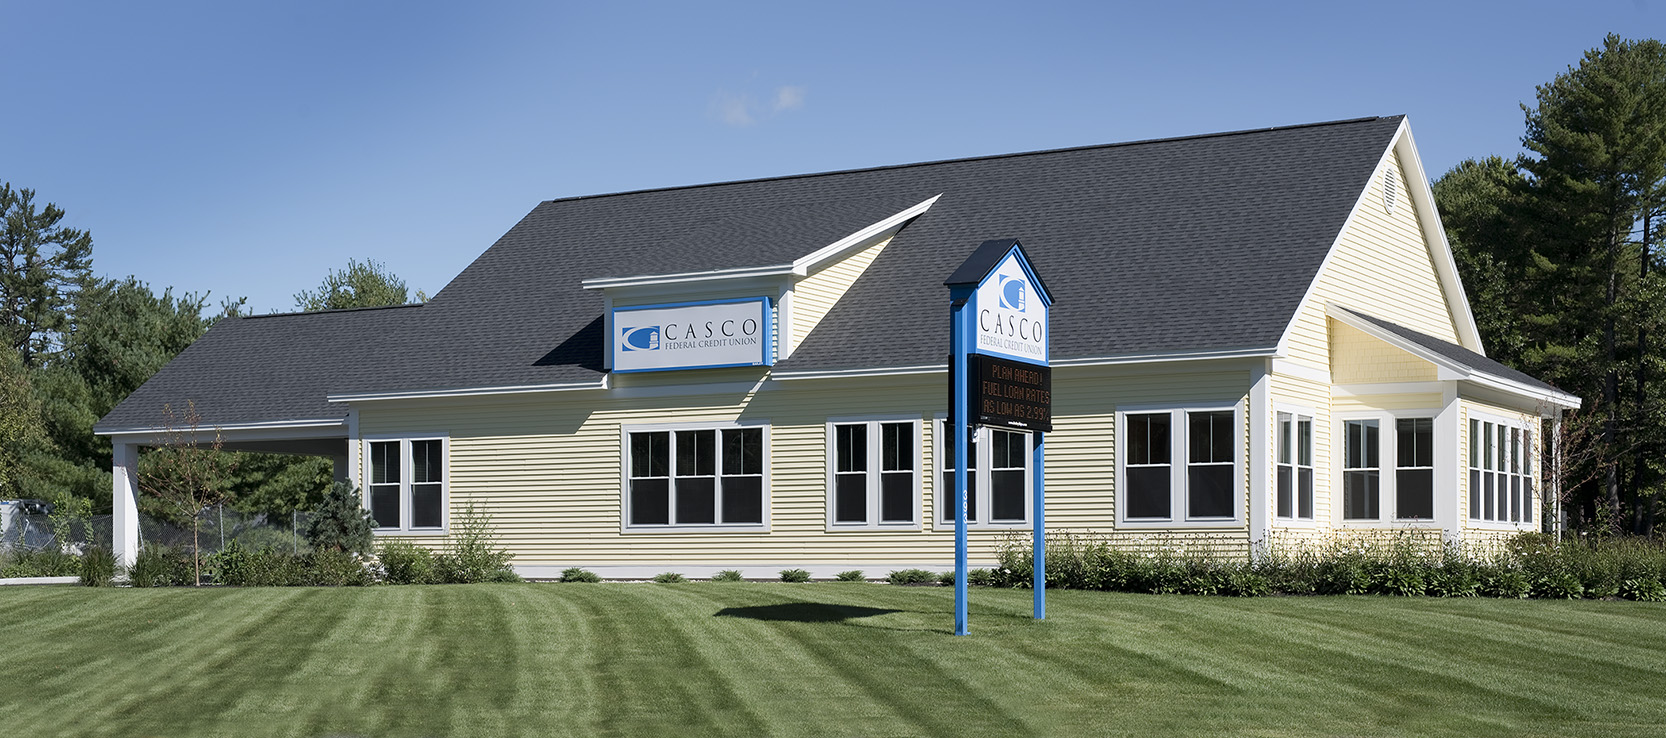 Casco Federal Credit Union, West Gorham, anchors a prominent corner site.